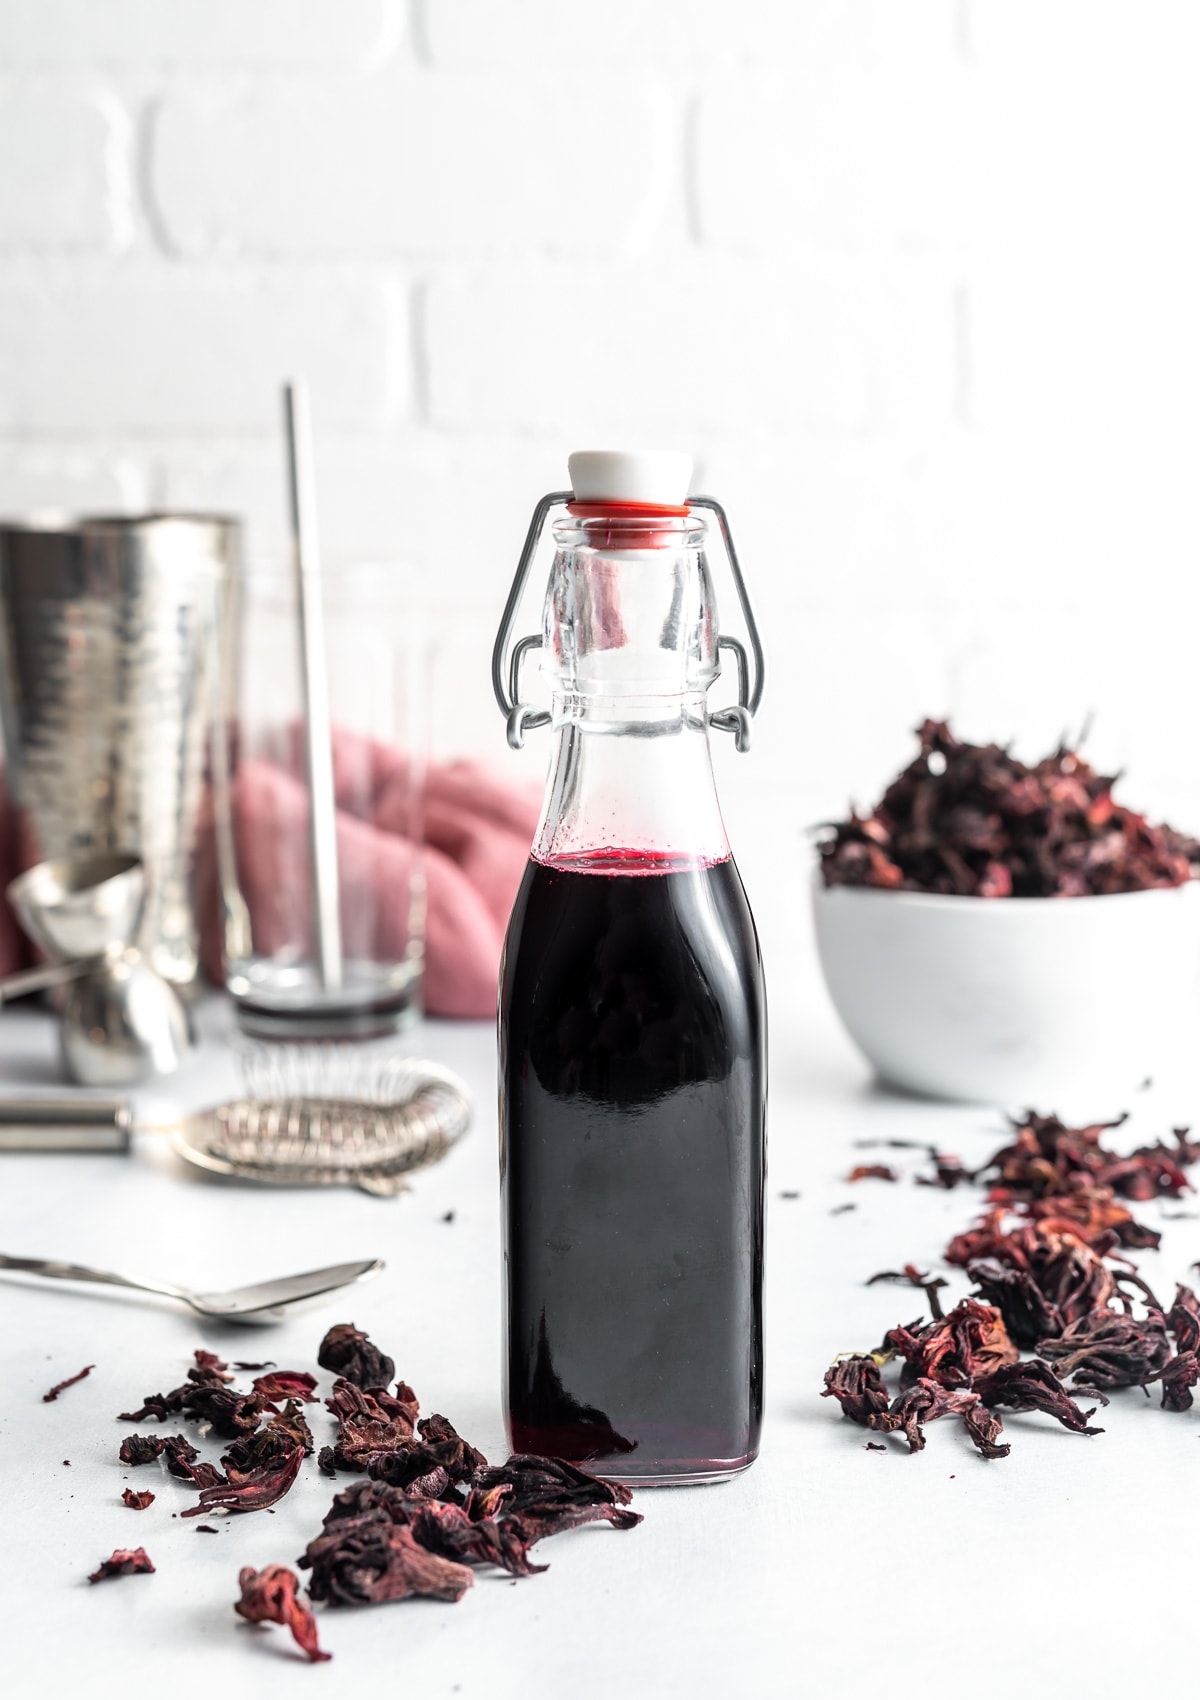 dark red hibiscus syrup in a bottle, dried hibiscus flowers